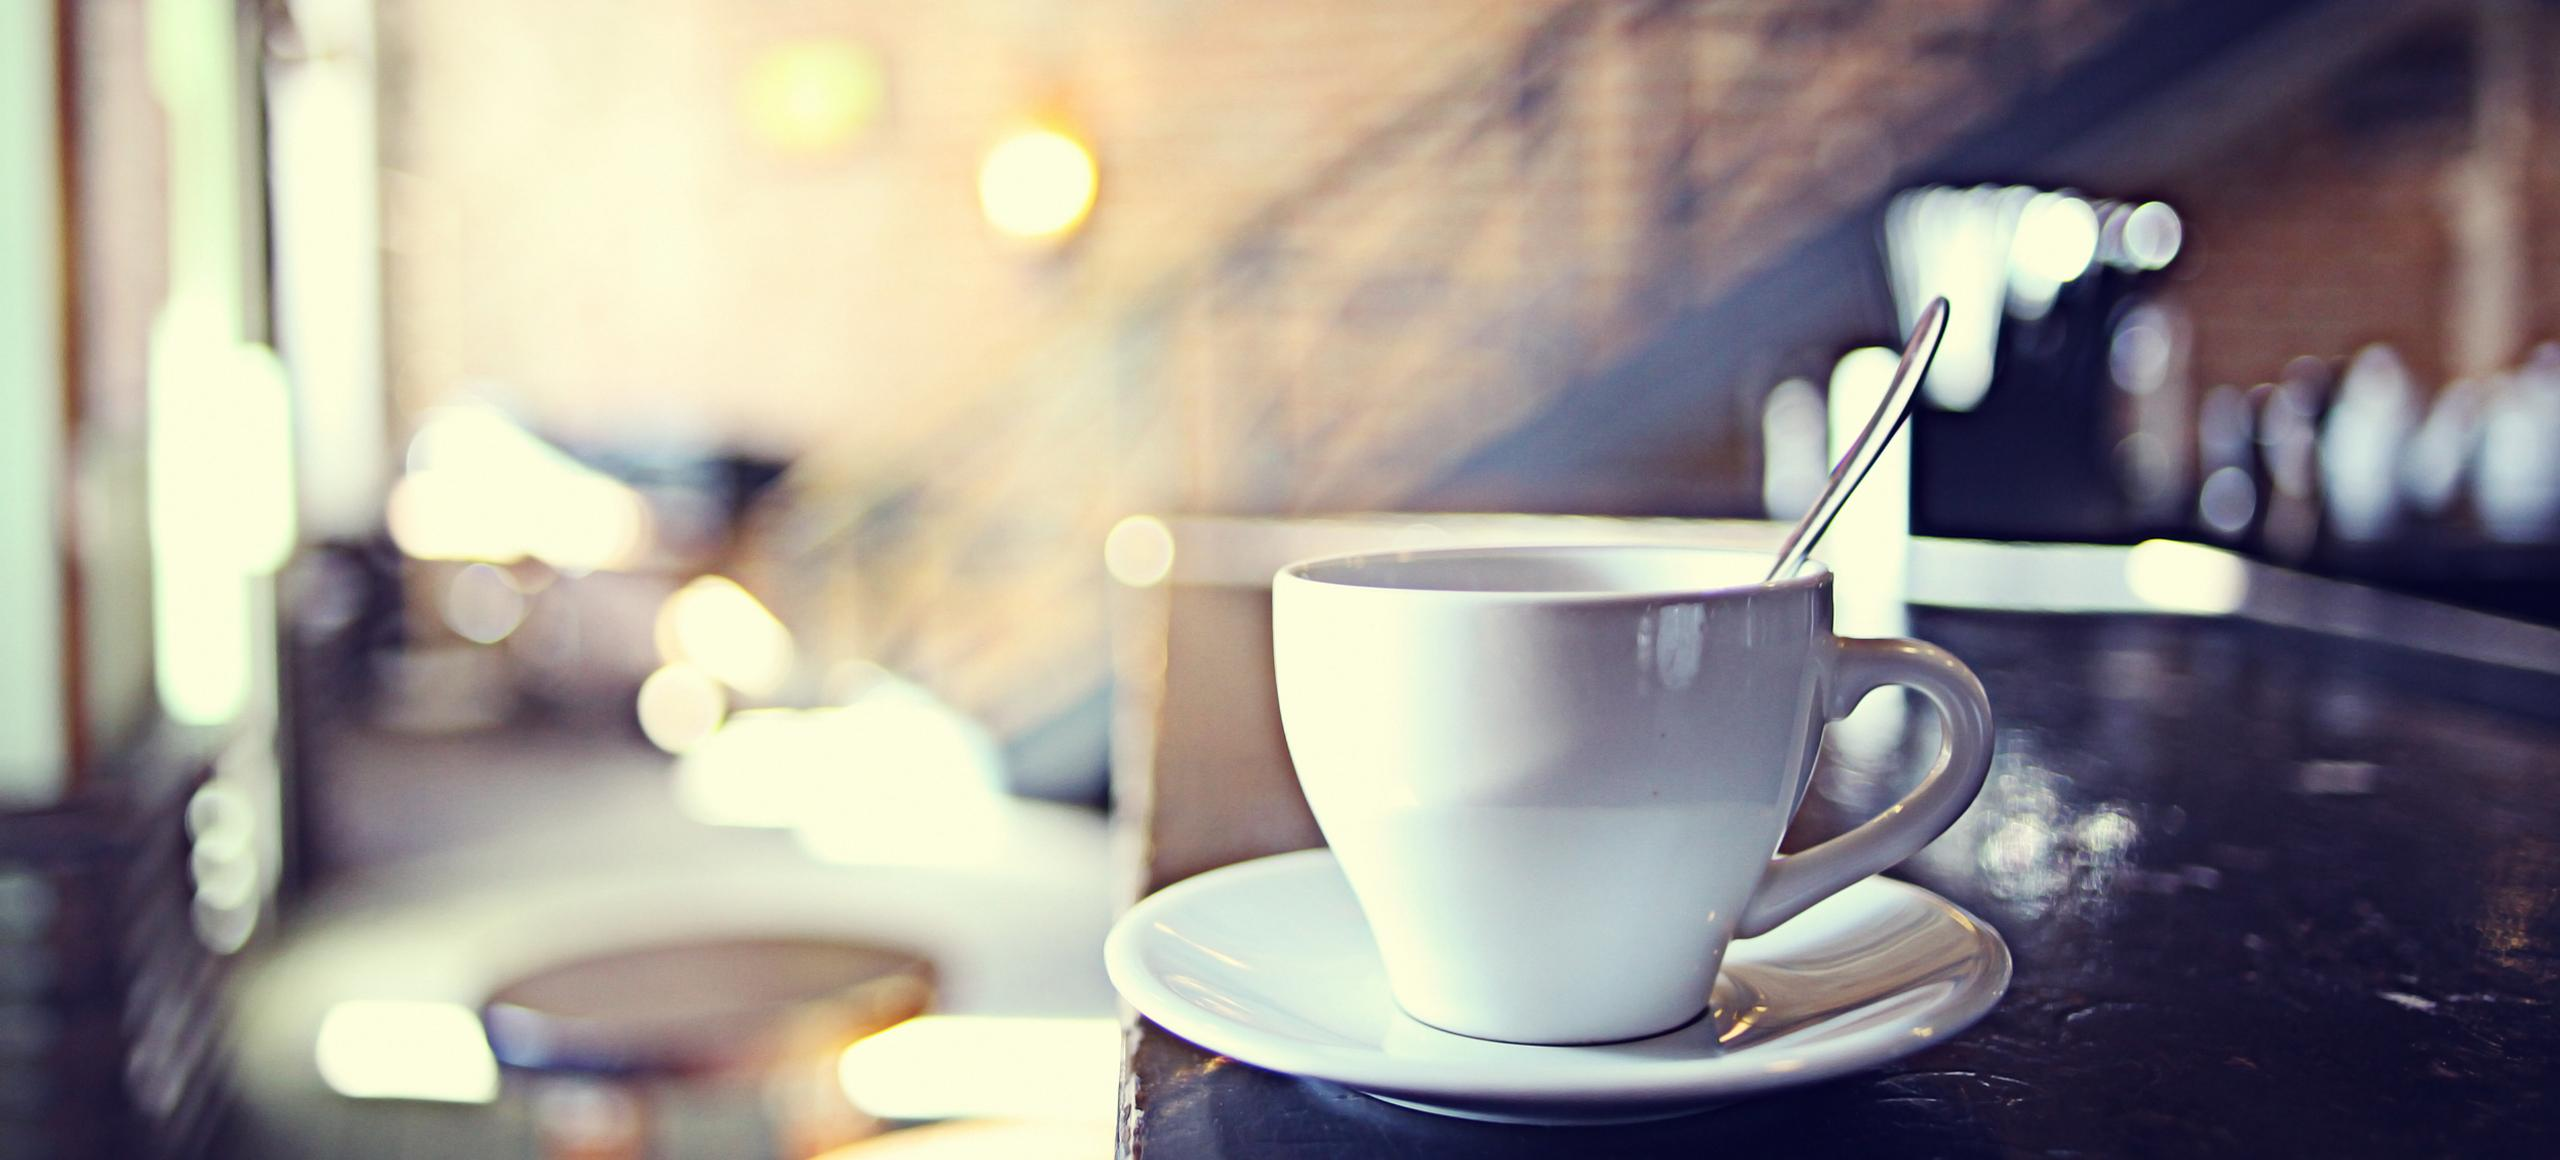 Tea in a cafe